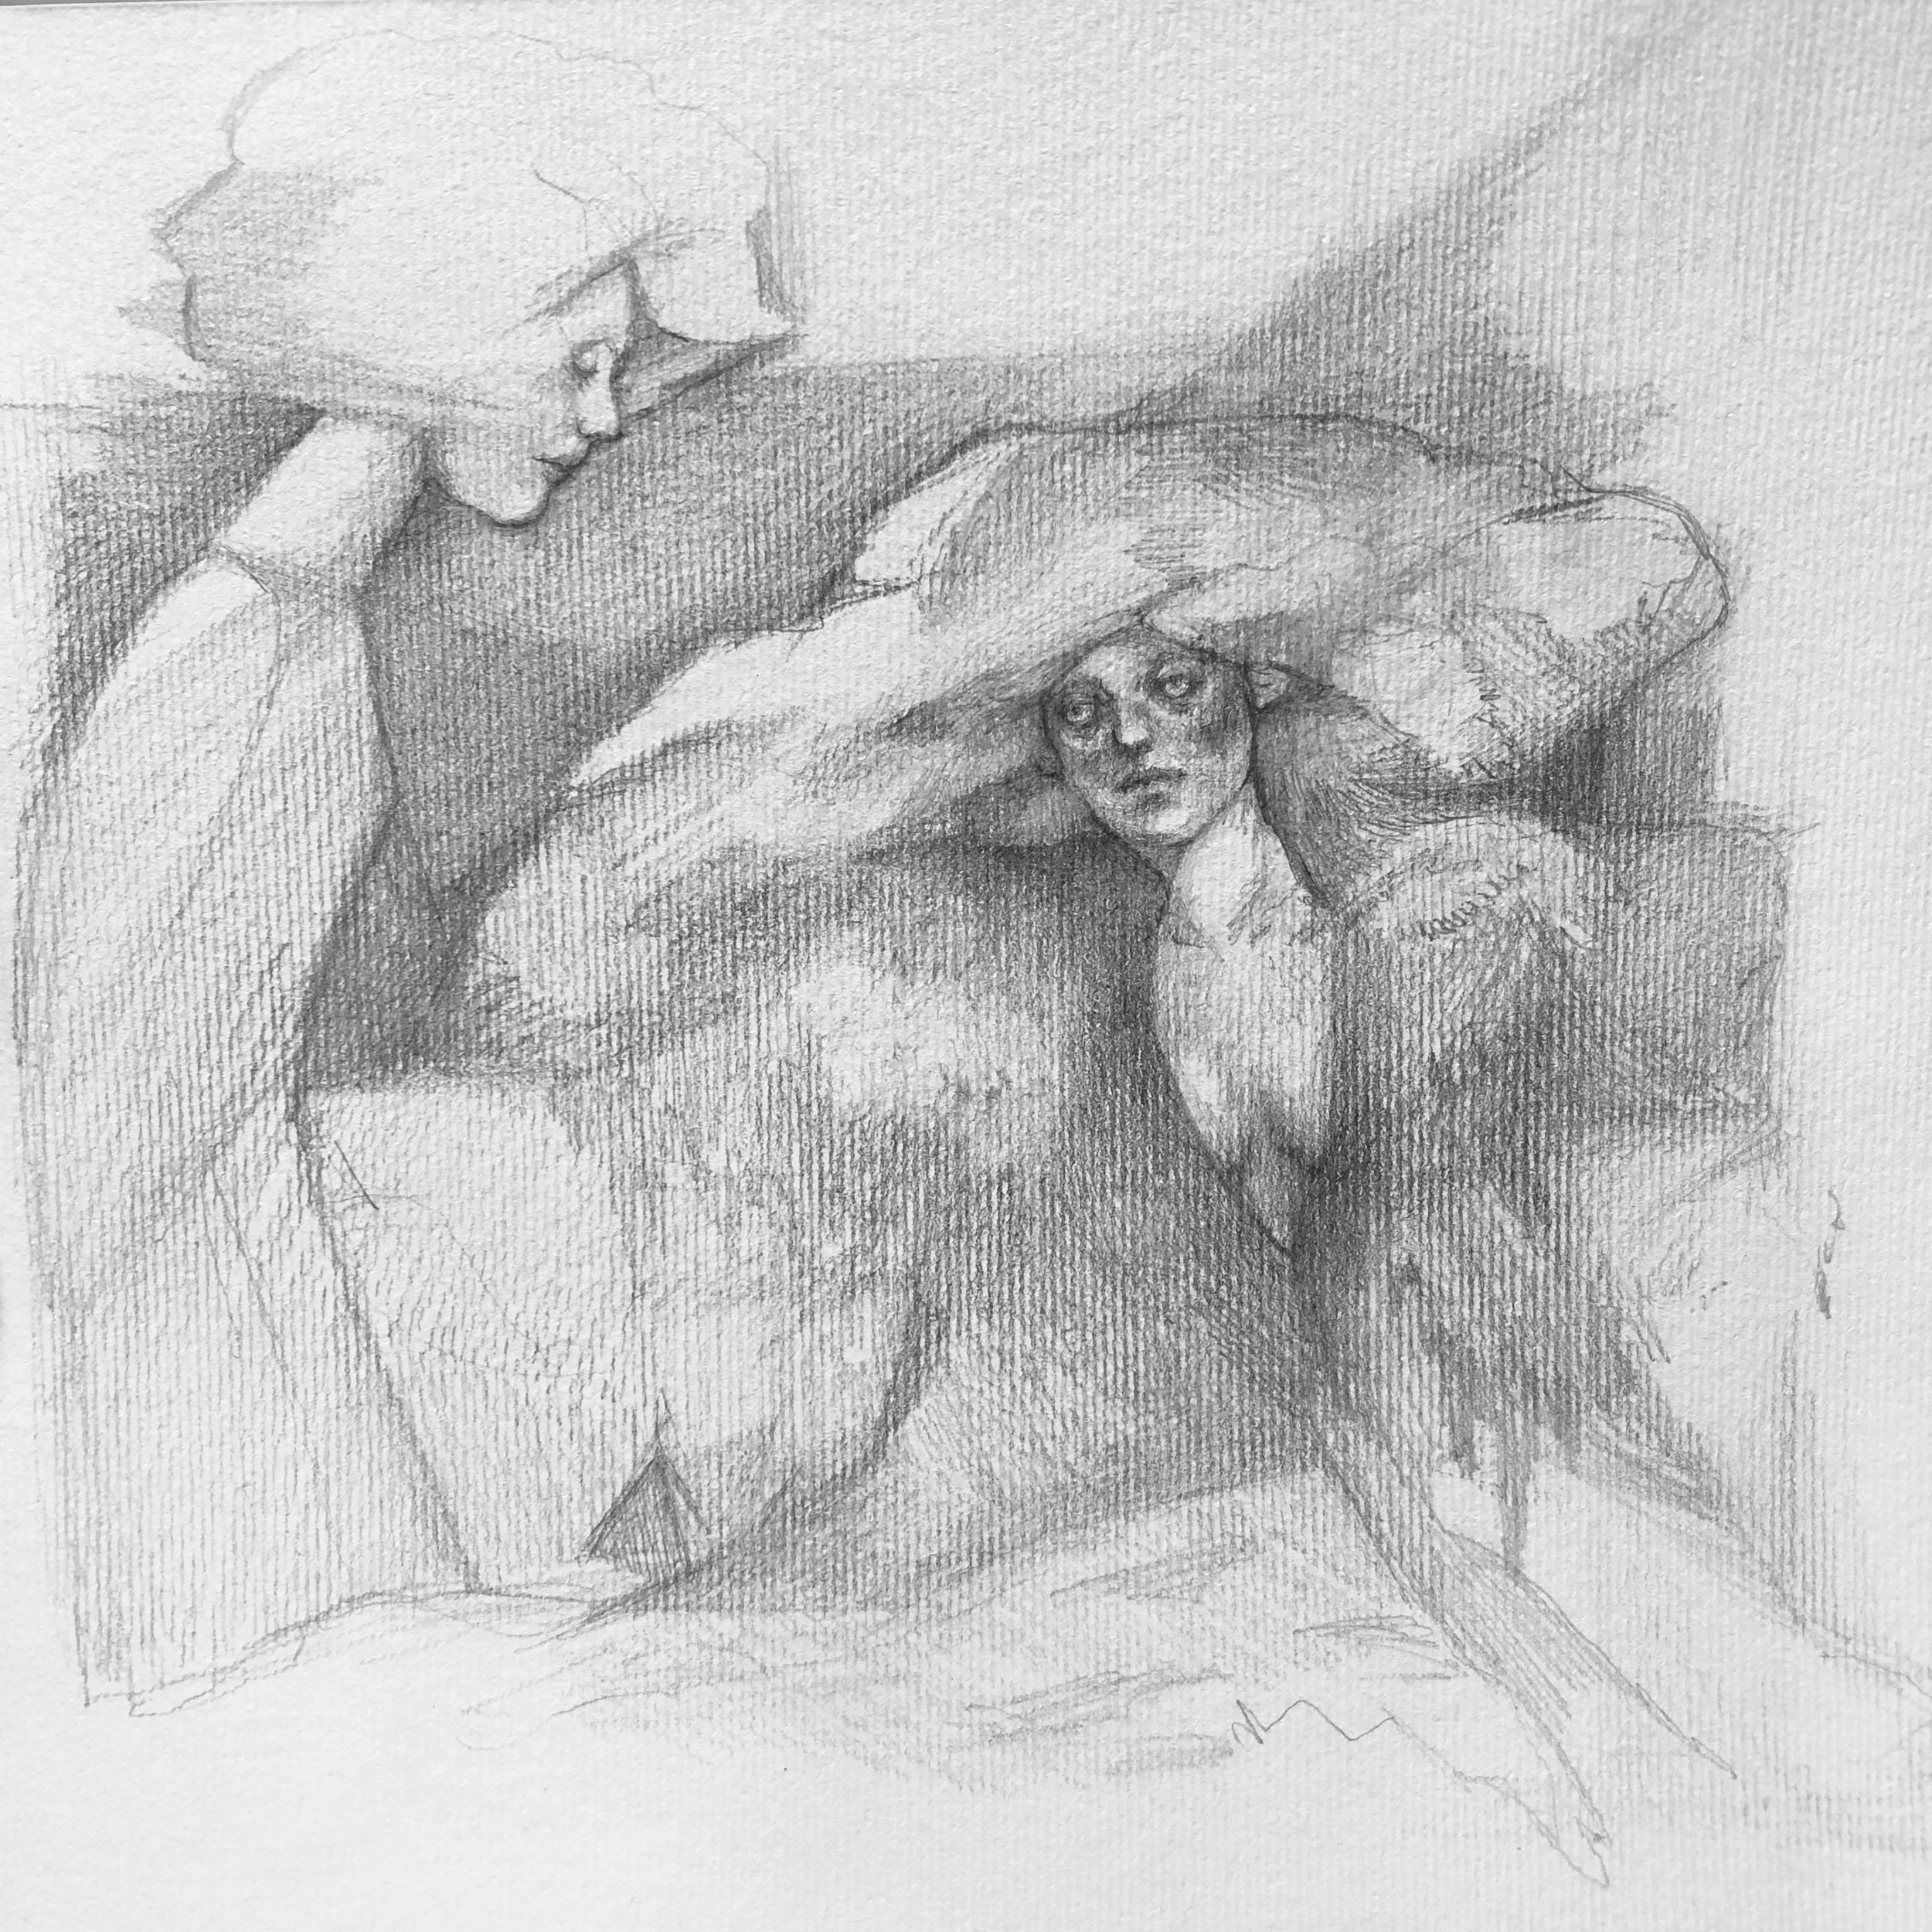 """The Conversation  Robyn Tang Pencil on Paper Paper Size: 7""""w x 6.25""""h 2018"""